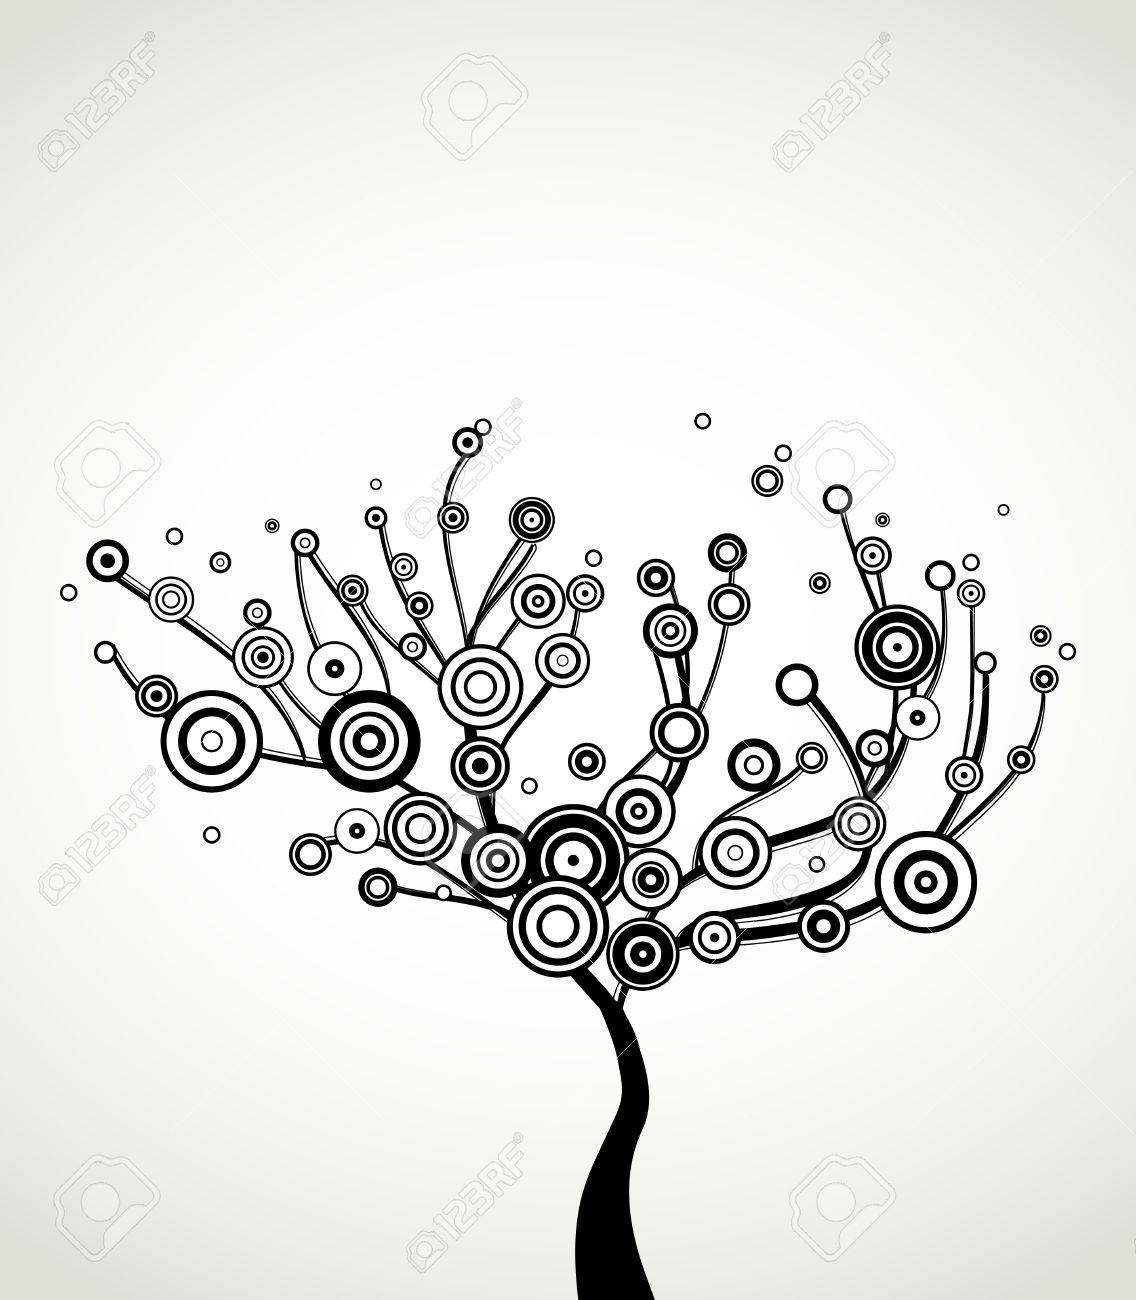 Tree with round leaves  Vector background Stock Vector - 14408908